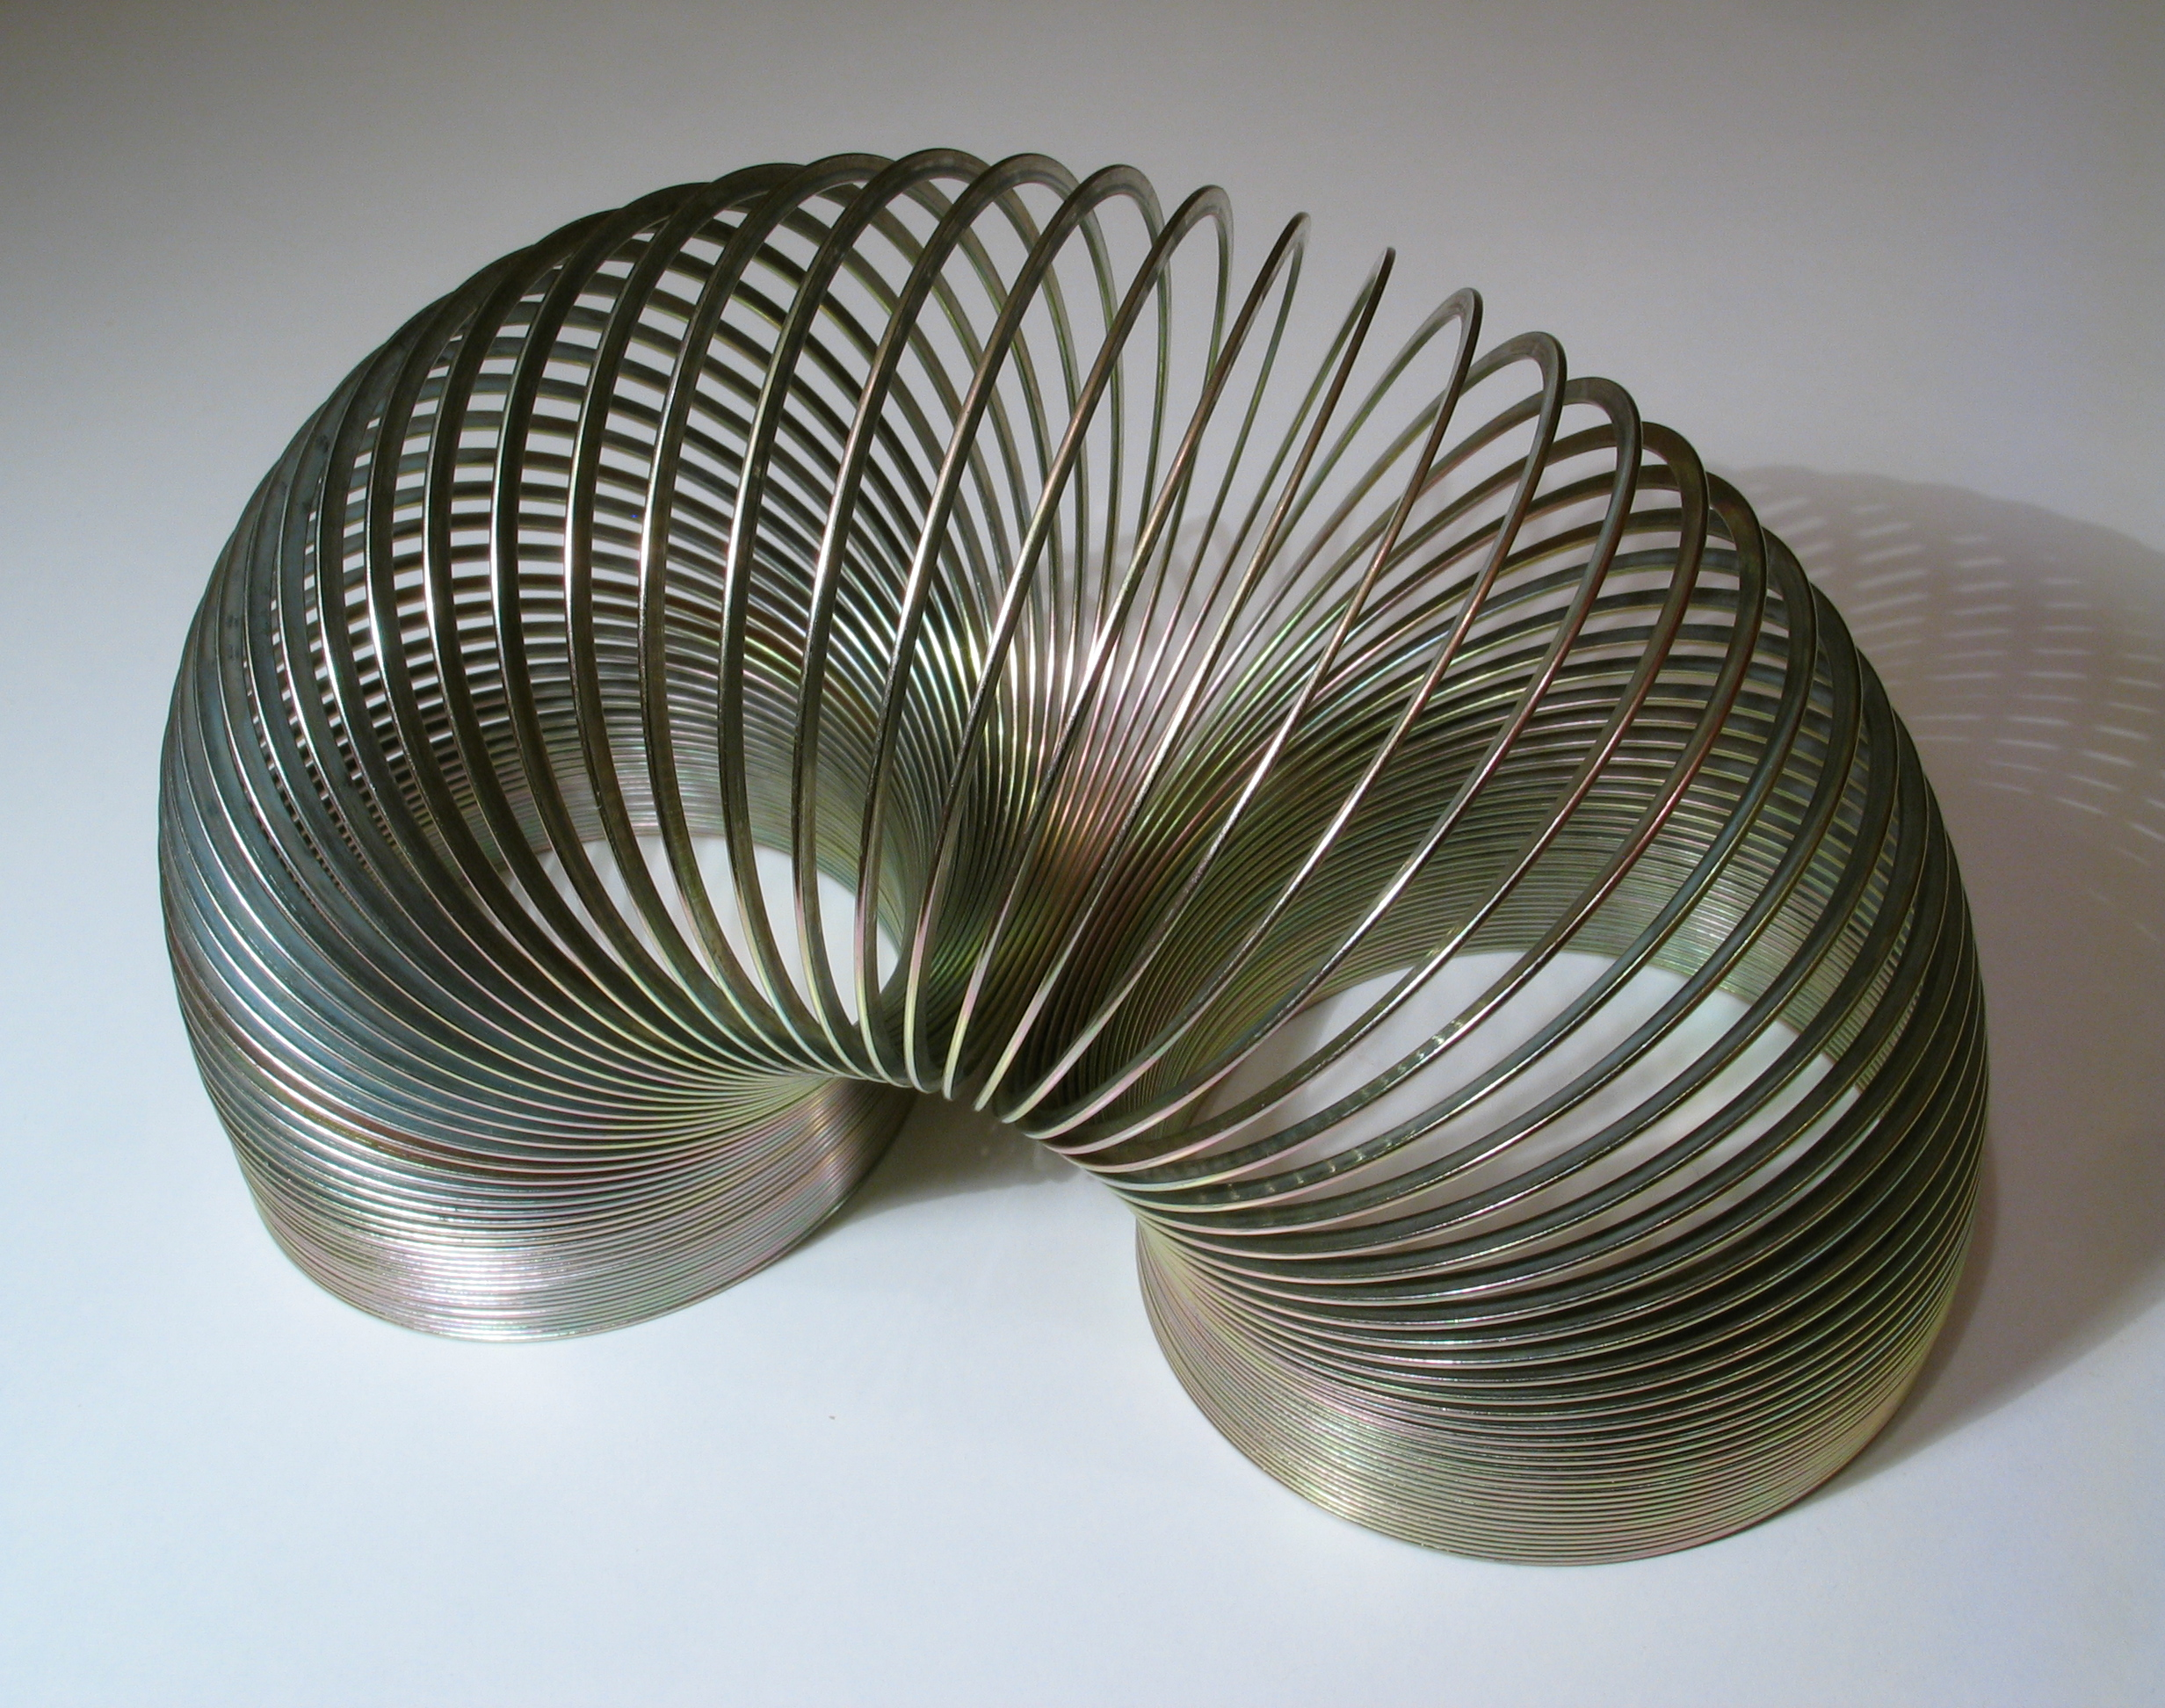 The Slinky Was Invented By Accident